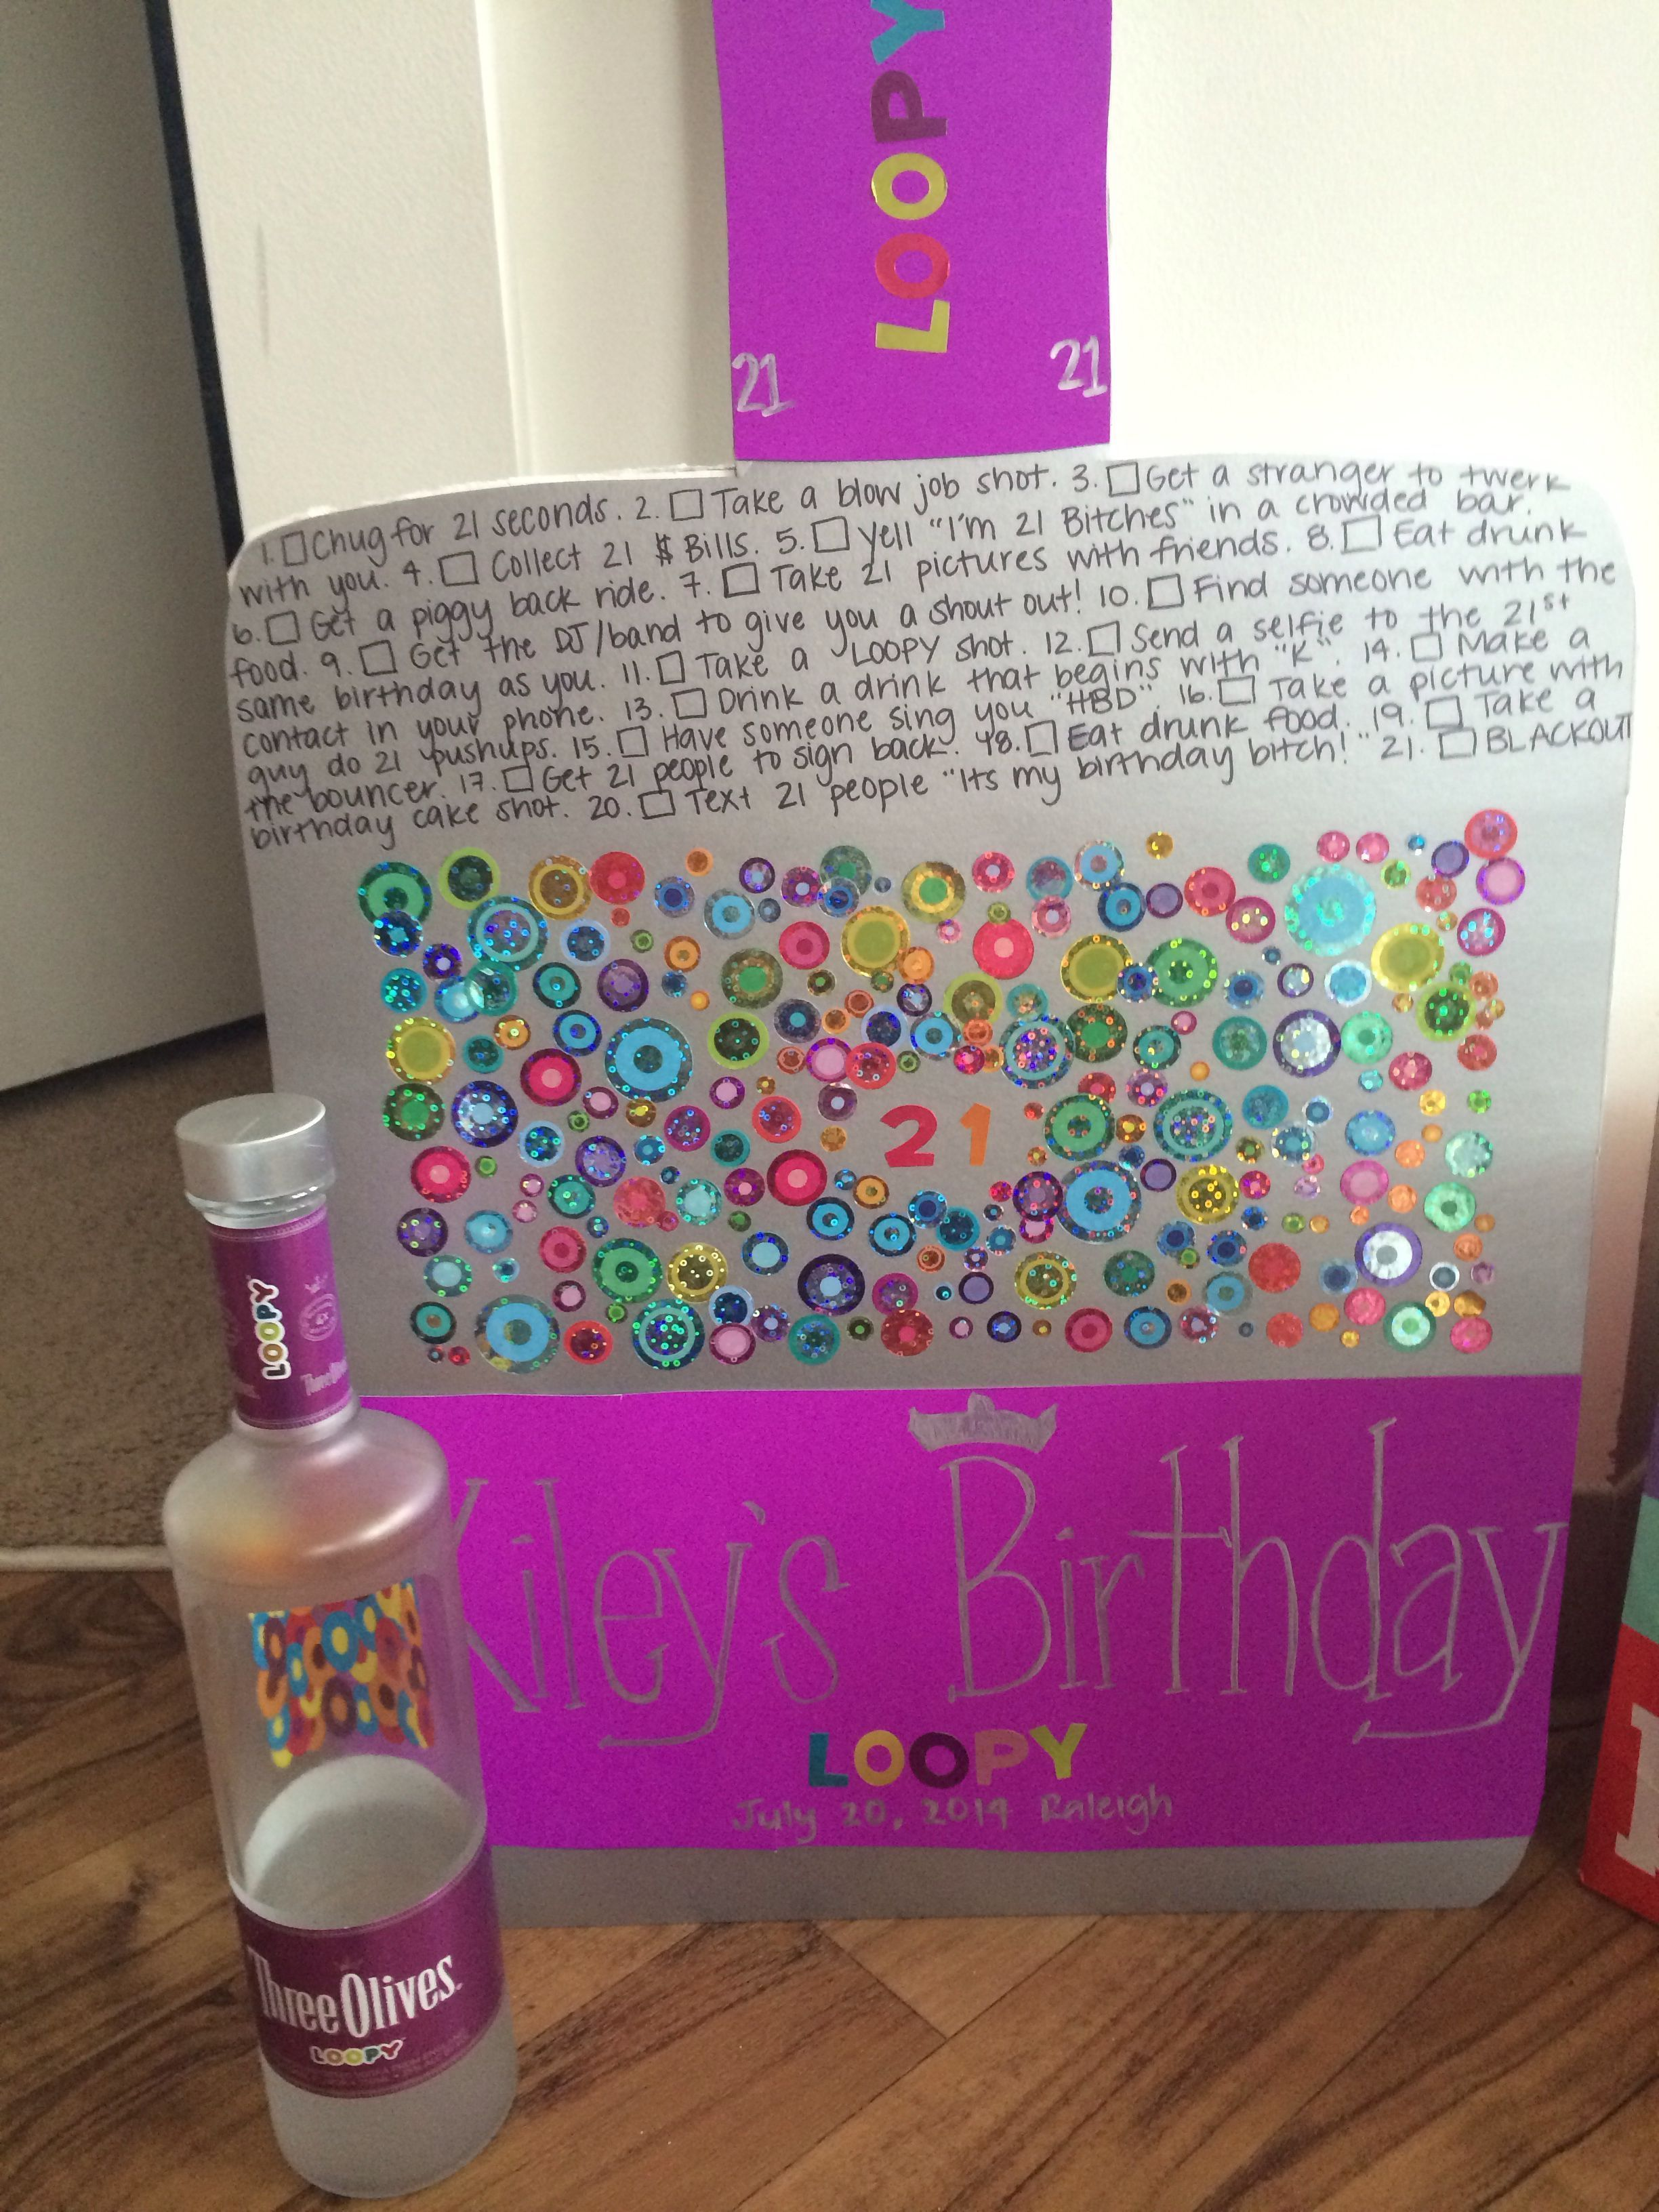 21st birthday sign! #21 #birthday #sign #crafts #loopy #vodka #college #21stbirthdaysigns 21st birthday sign! #21 #birthday #sign #crafts #loopy #vodka #college #21stbirthdaysigns 21st birthday sign! #21 #birthday #sign #crafts #loopy #vodka #college #21stbirthdaysigns 21st birthday sign! #21 #birthday #sign #crafts #loopy #vodka #college #21stbirthdaysigns 21st birthday sign! #21 #birthday #sign #crafts #loopy #vodka #college #21stbirthdaysigns 21st birthday sign! #21 #birthday #sign #crafts #l #21stbirthdaysigns